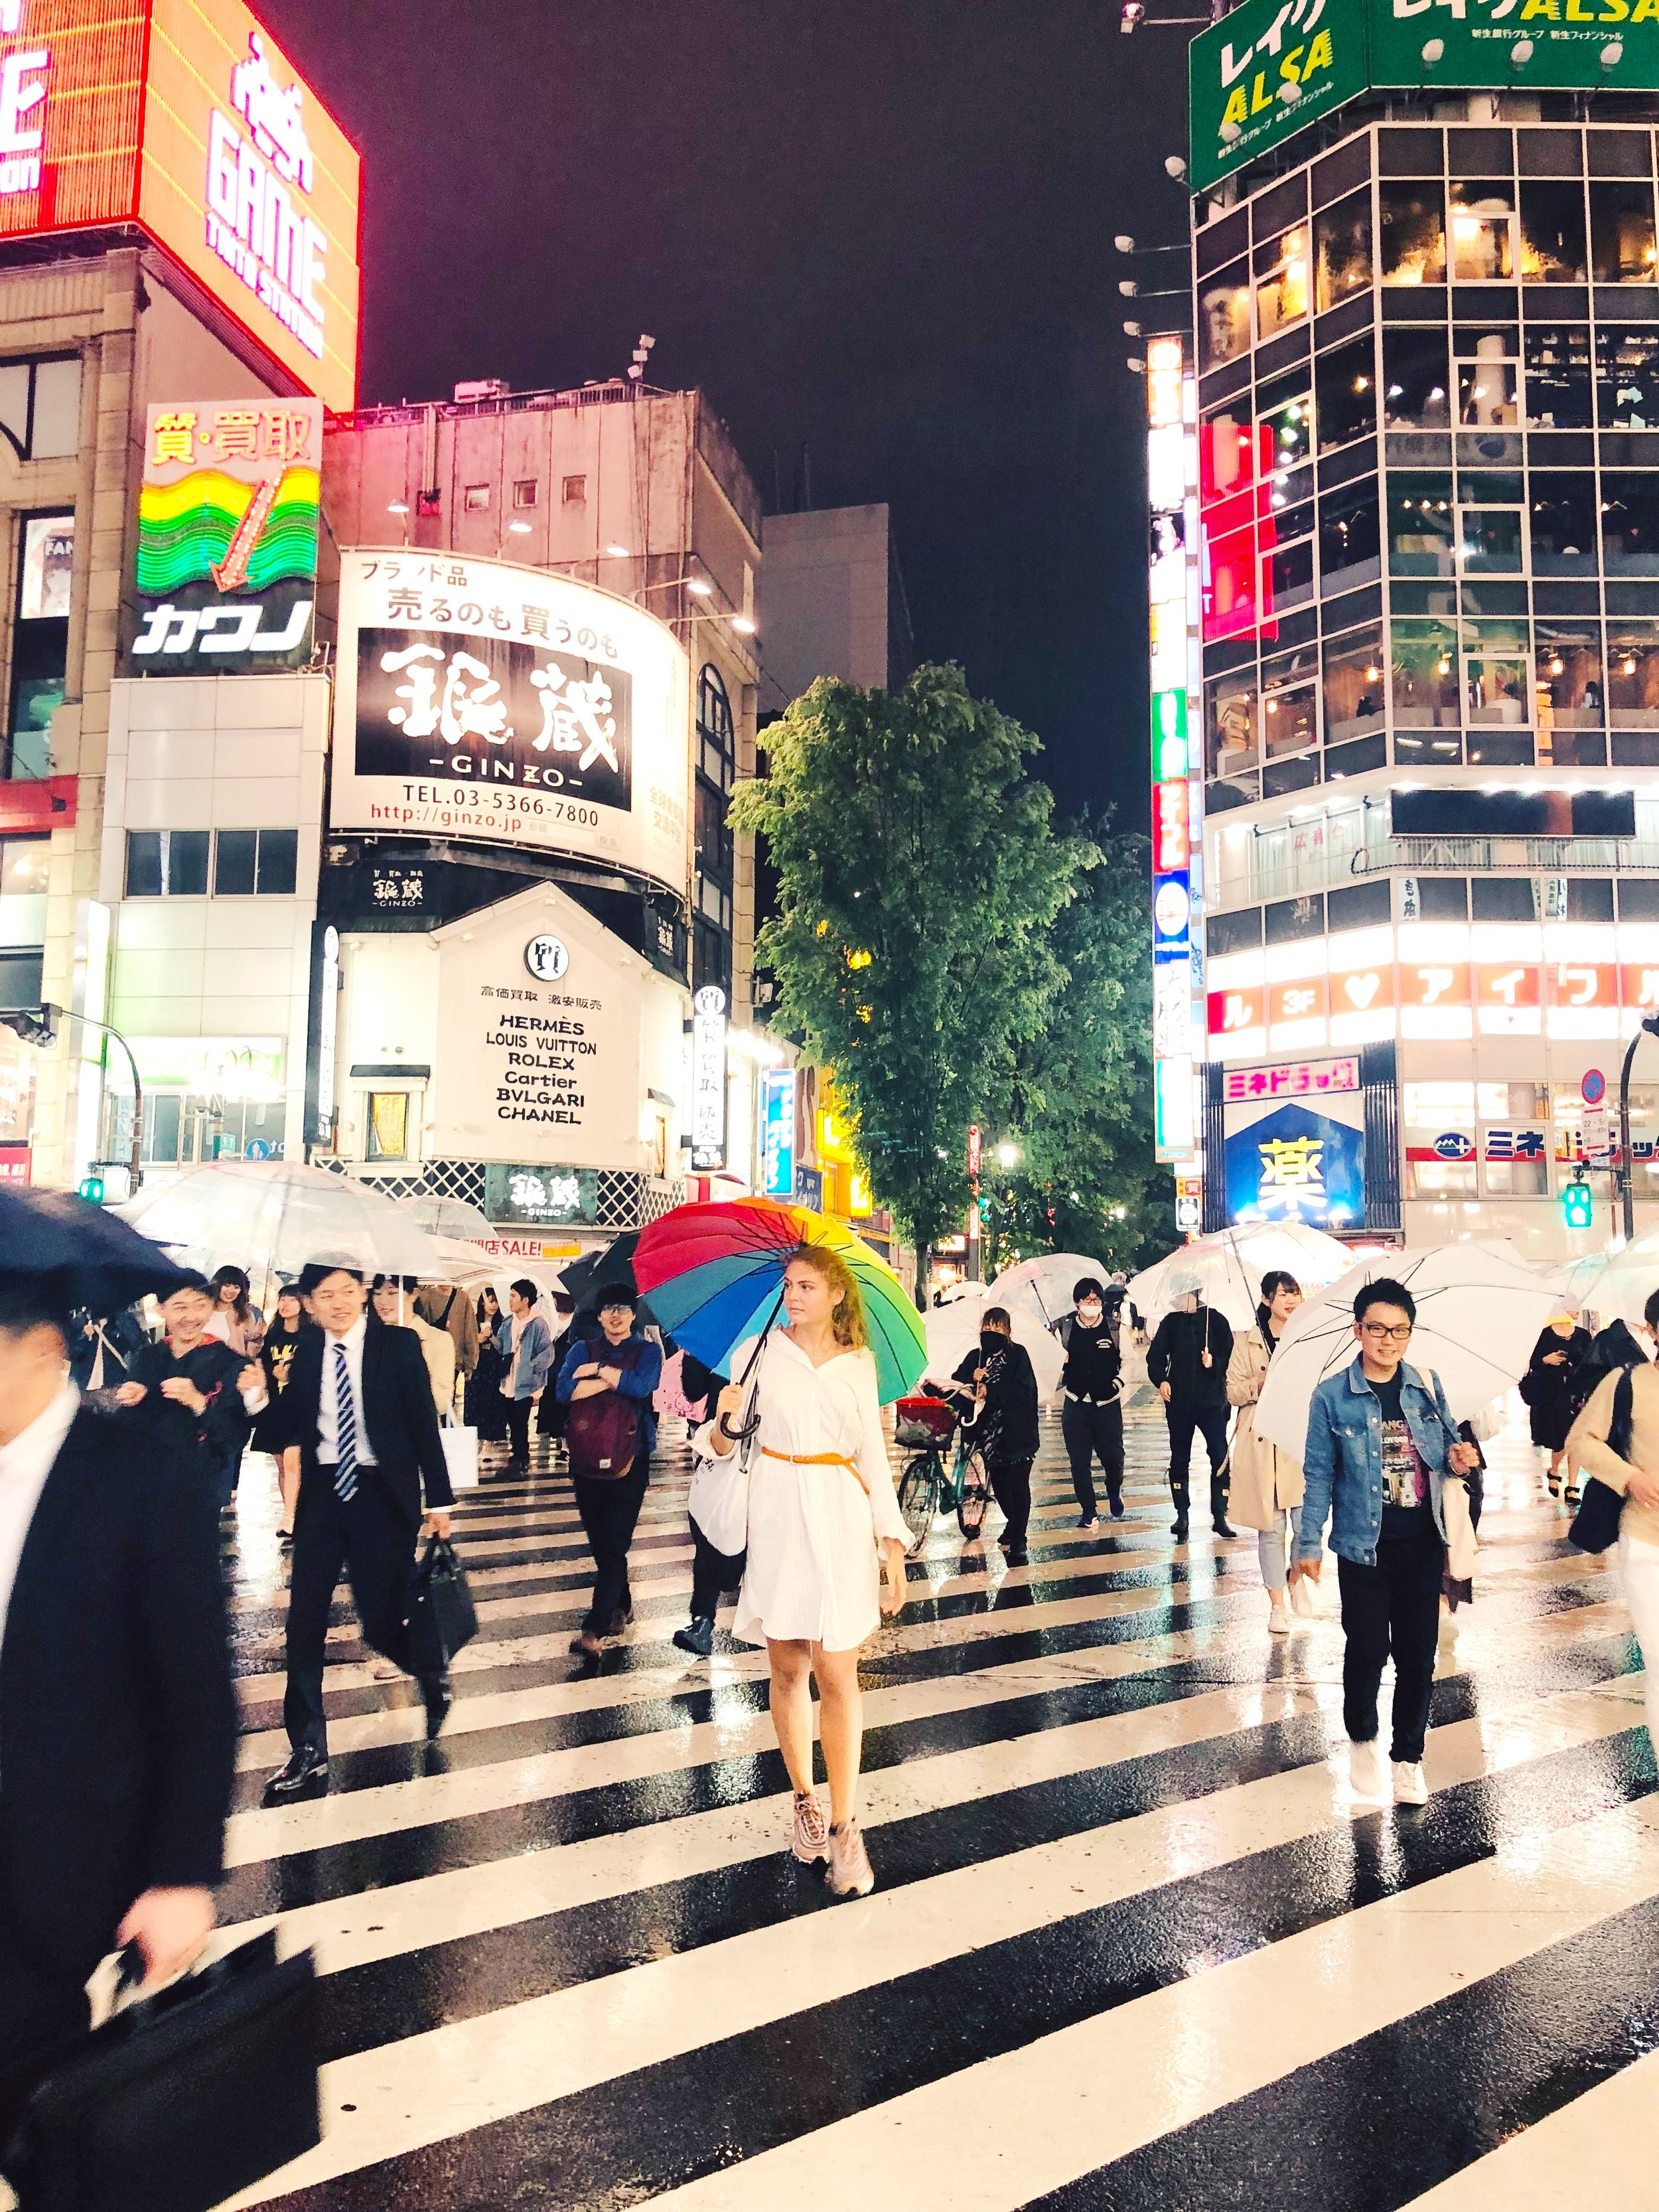 4.let there be light - Make sure to make it to Shinjuku – Kabukicho even if it is raining. In fact it is even cooler when it is raining as the colors of the light gets reflected in the wet streets.